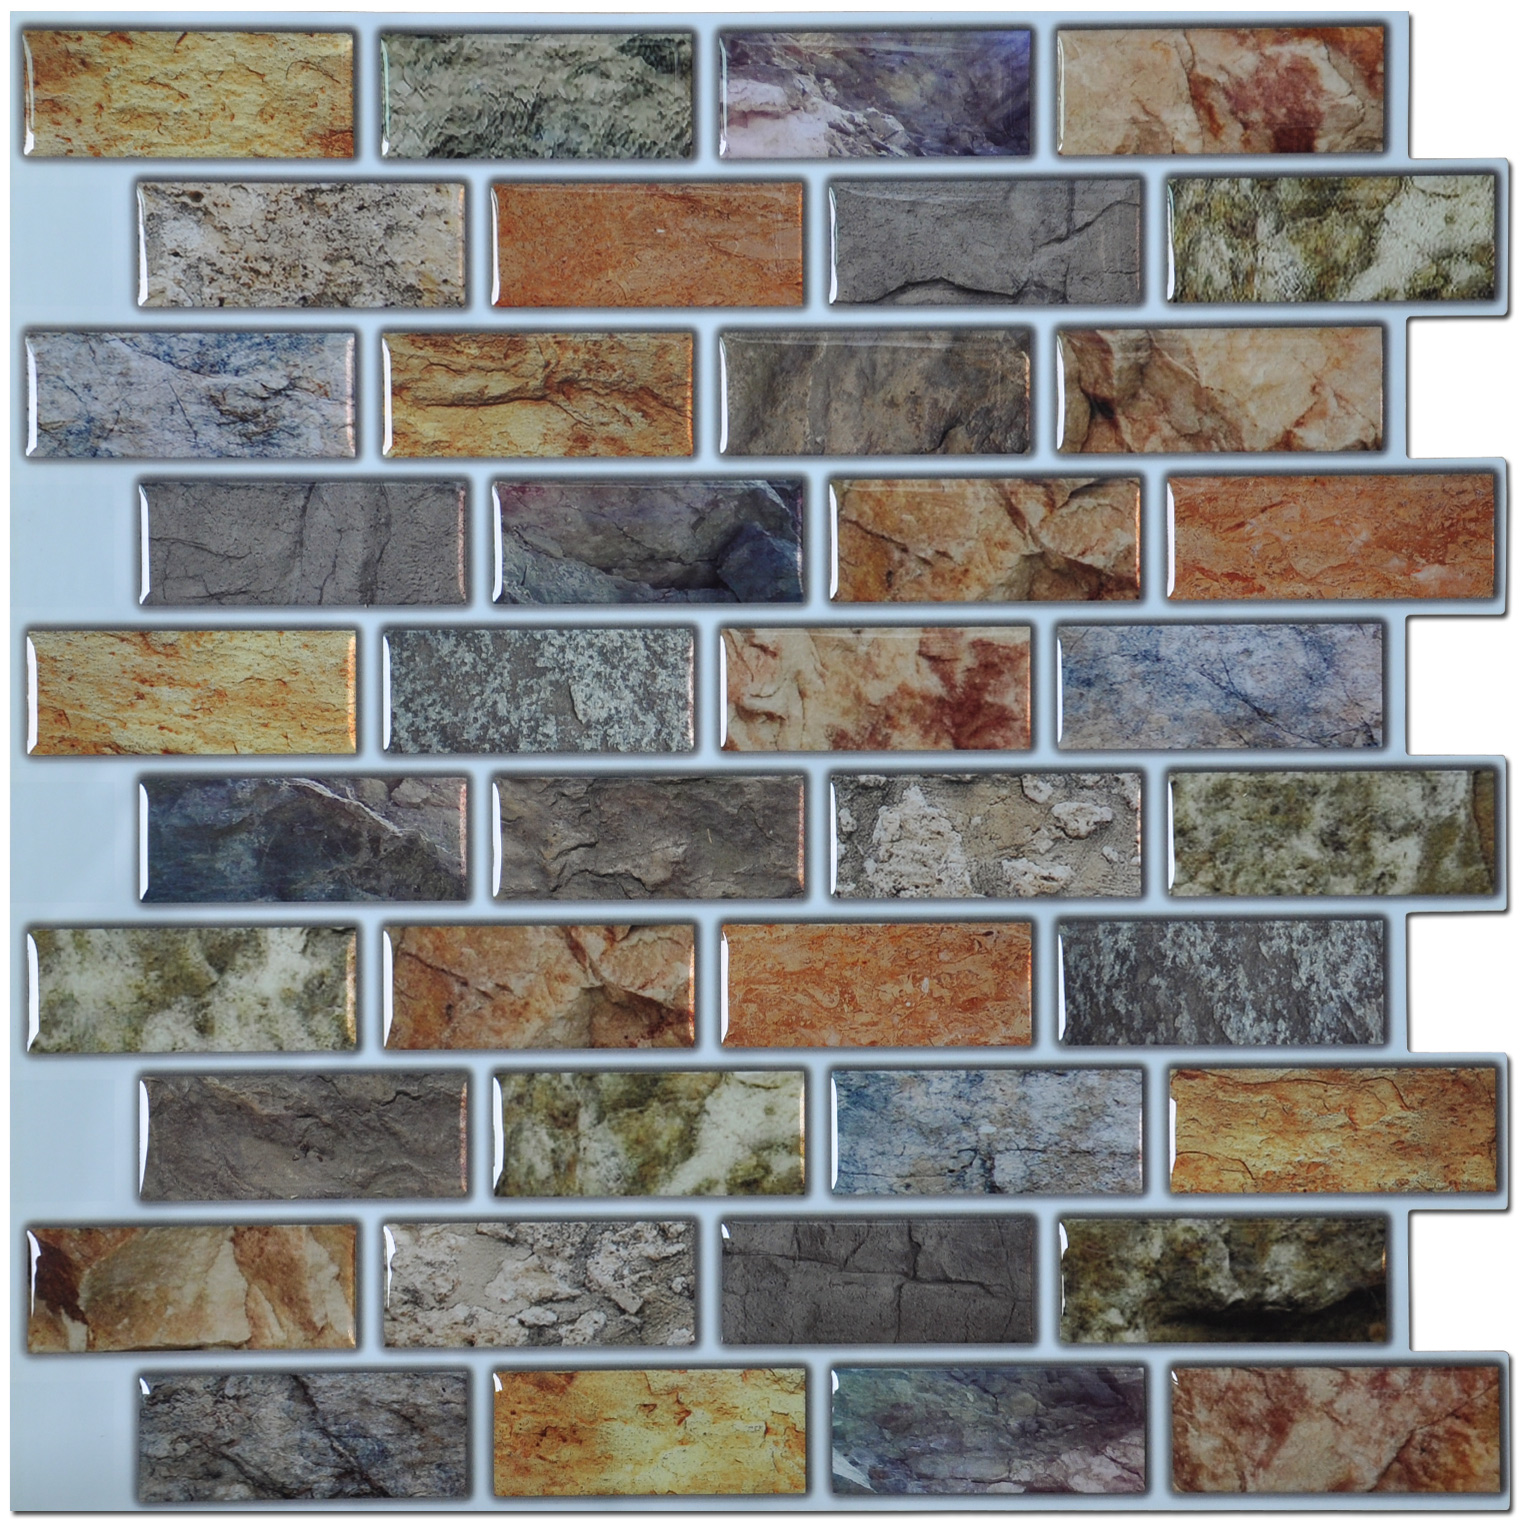 - Art3d Backsplash Peel N Stick Tiles Kitchen / Bathroom Backsplash Tiles 12